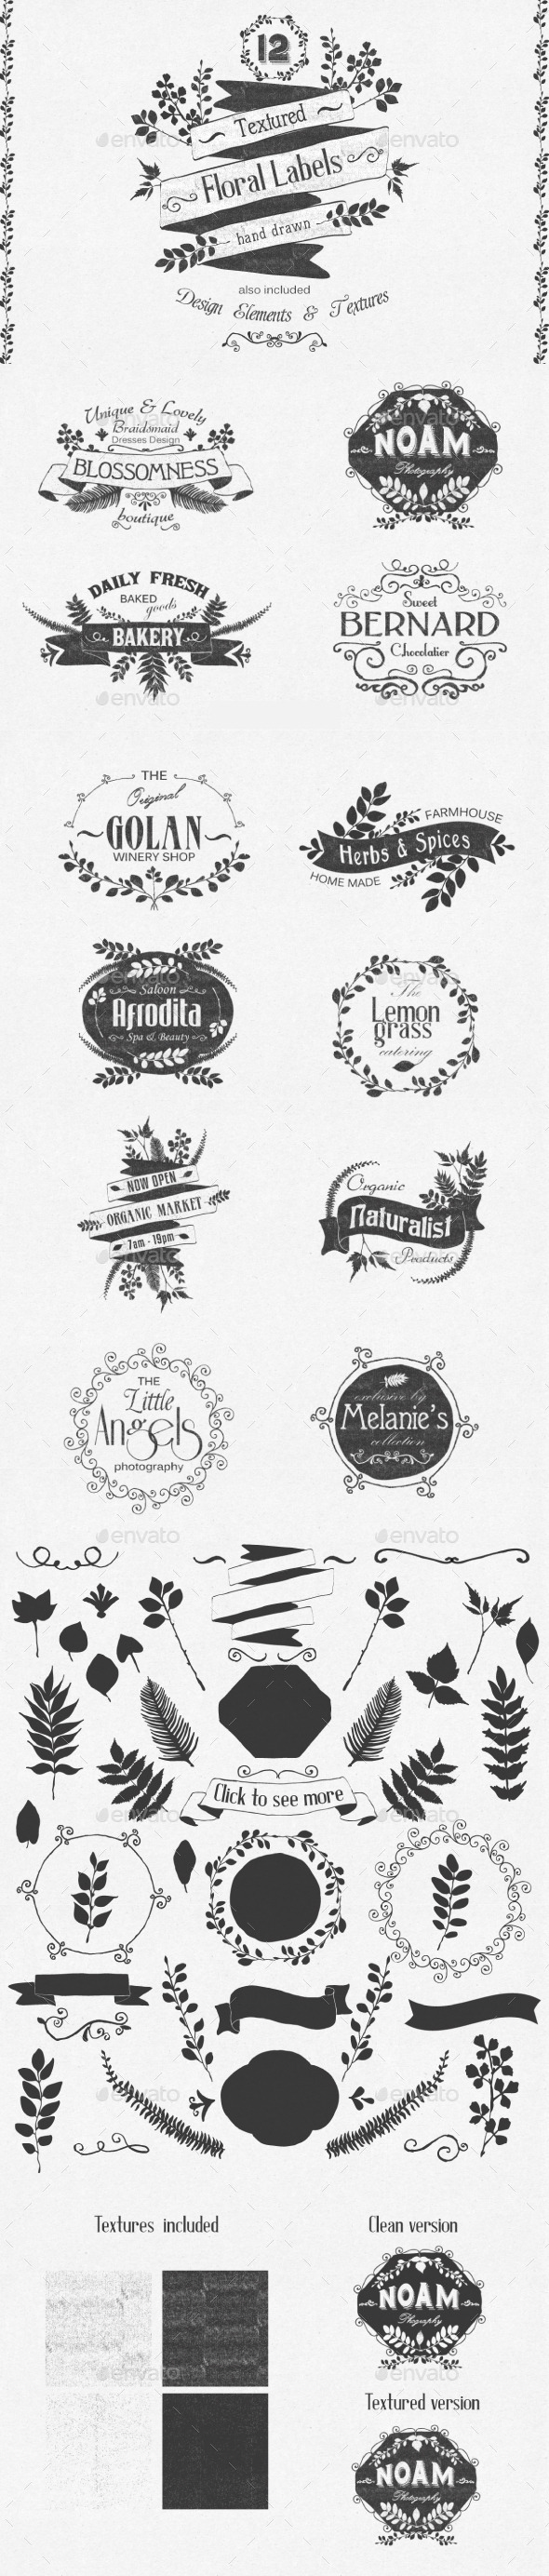 GraphicRiver Hand Drawn Floral Labels and Design Elements 10169622